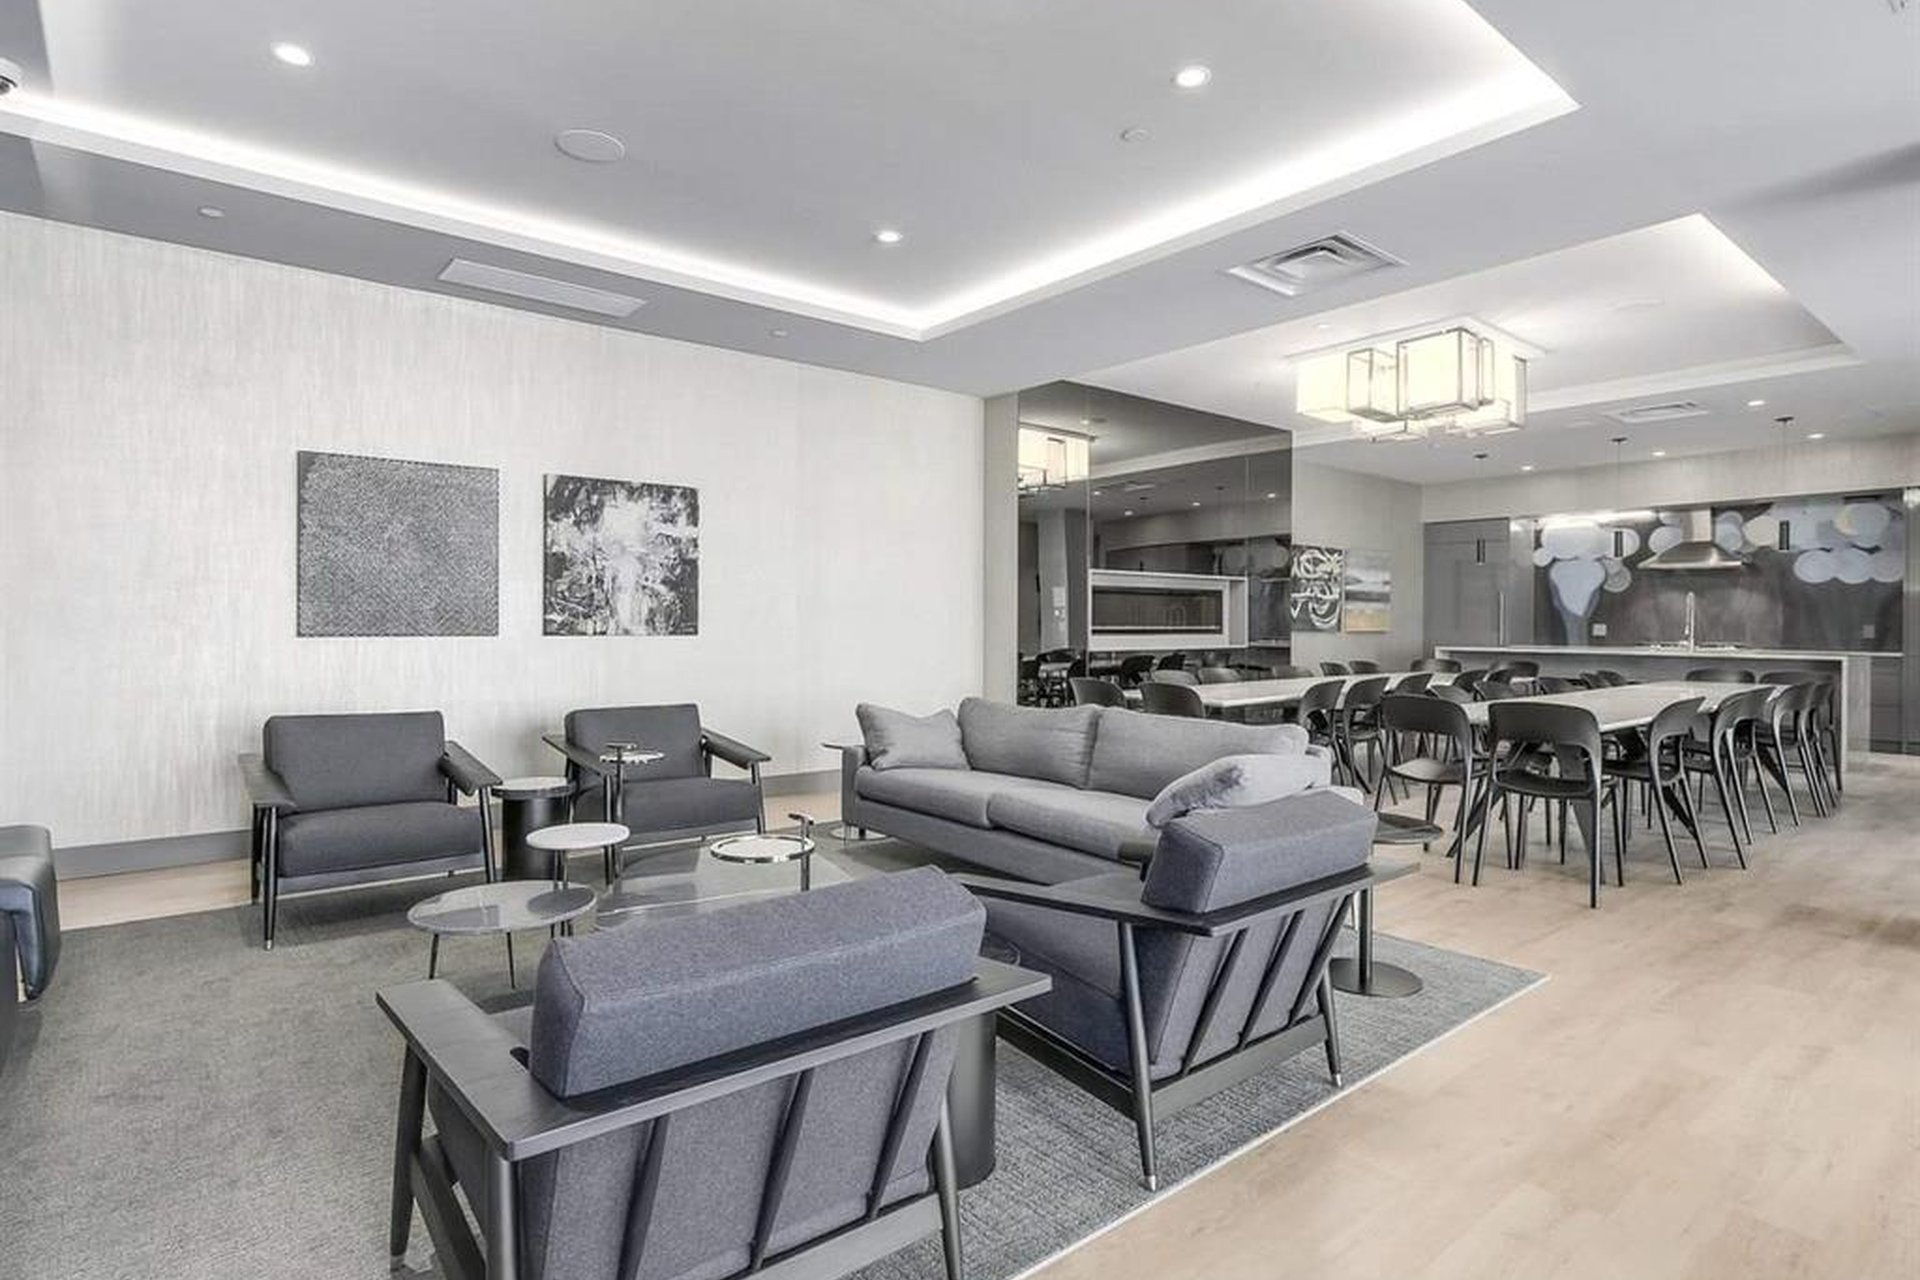 Centreview - 125 E 14th St | Amenity Room